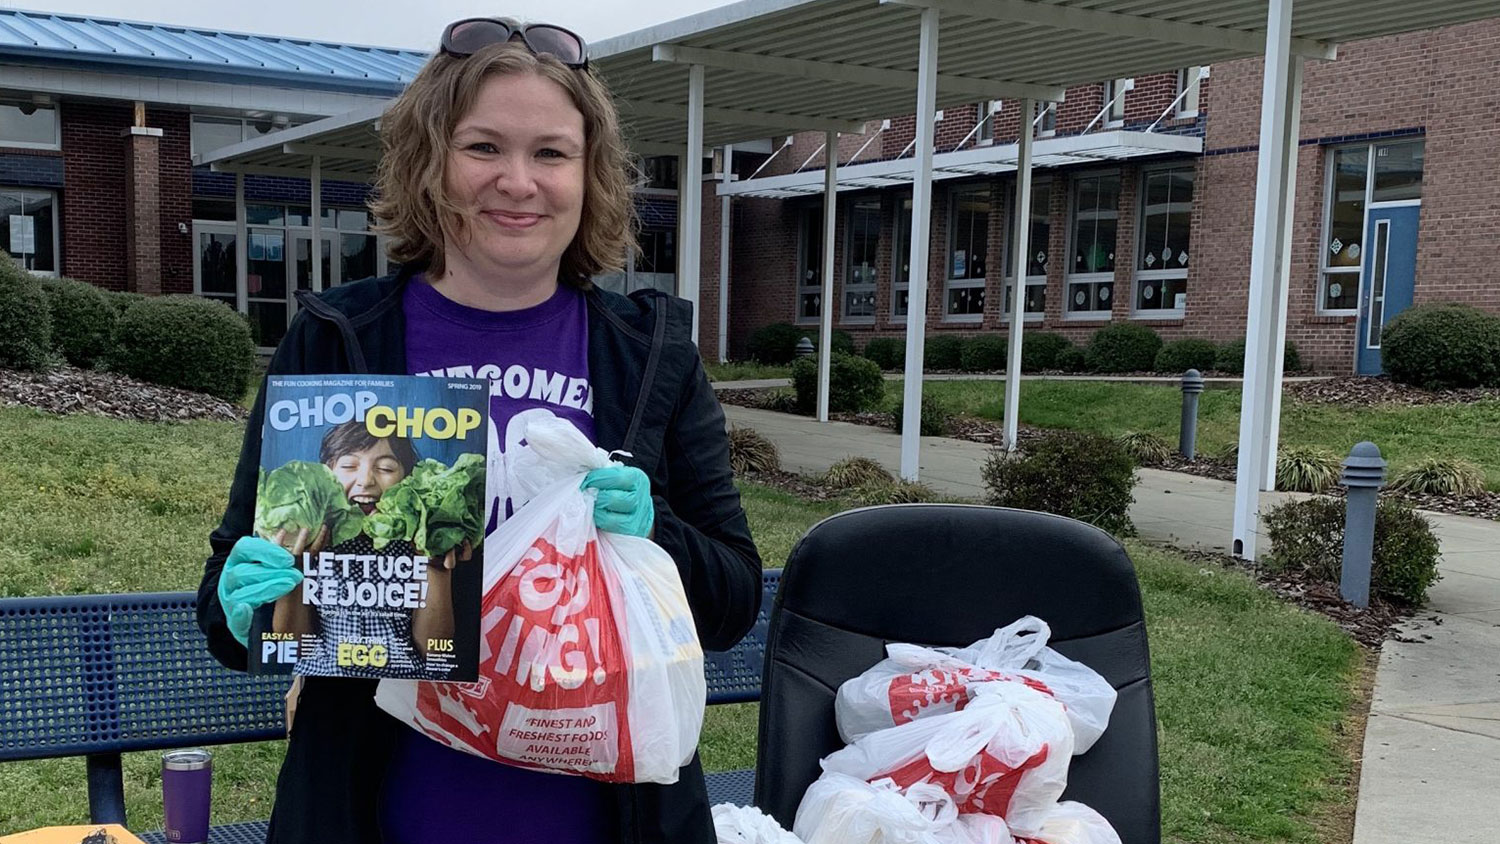 White female outside a school holding a magazine and grocery bags